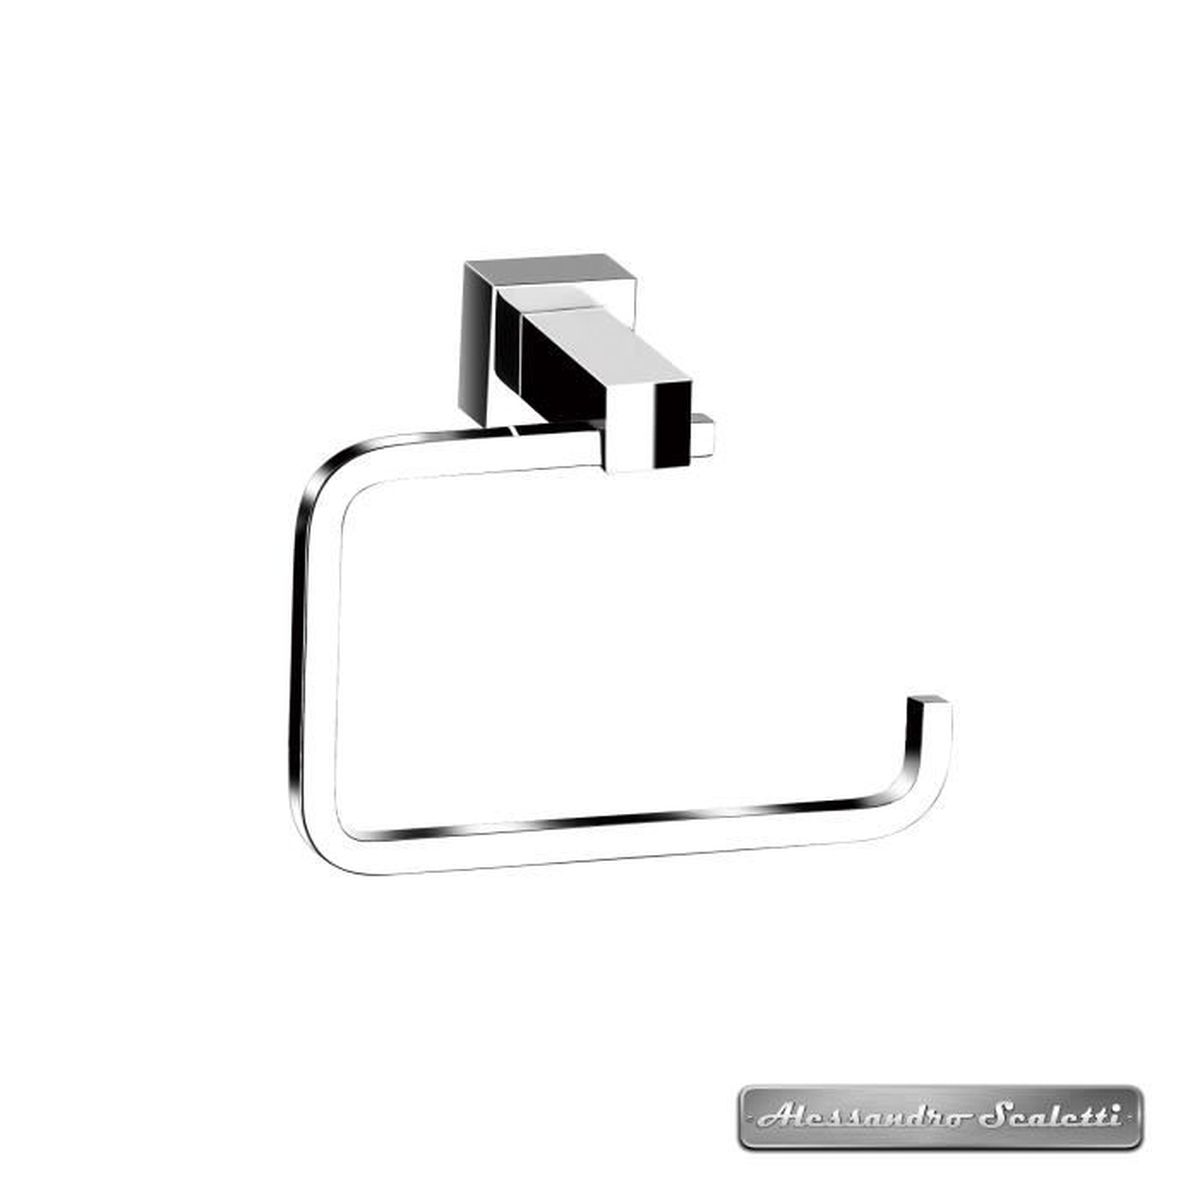 Attractive porte rouleau papier toilette design 12 porte for Porte toilette